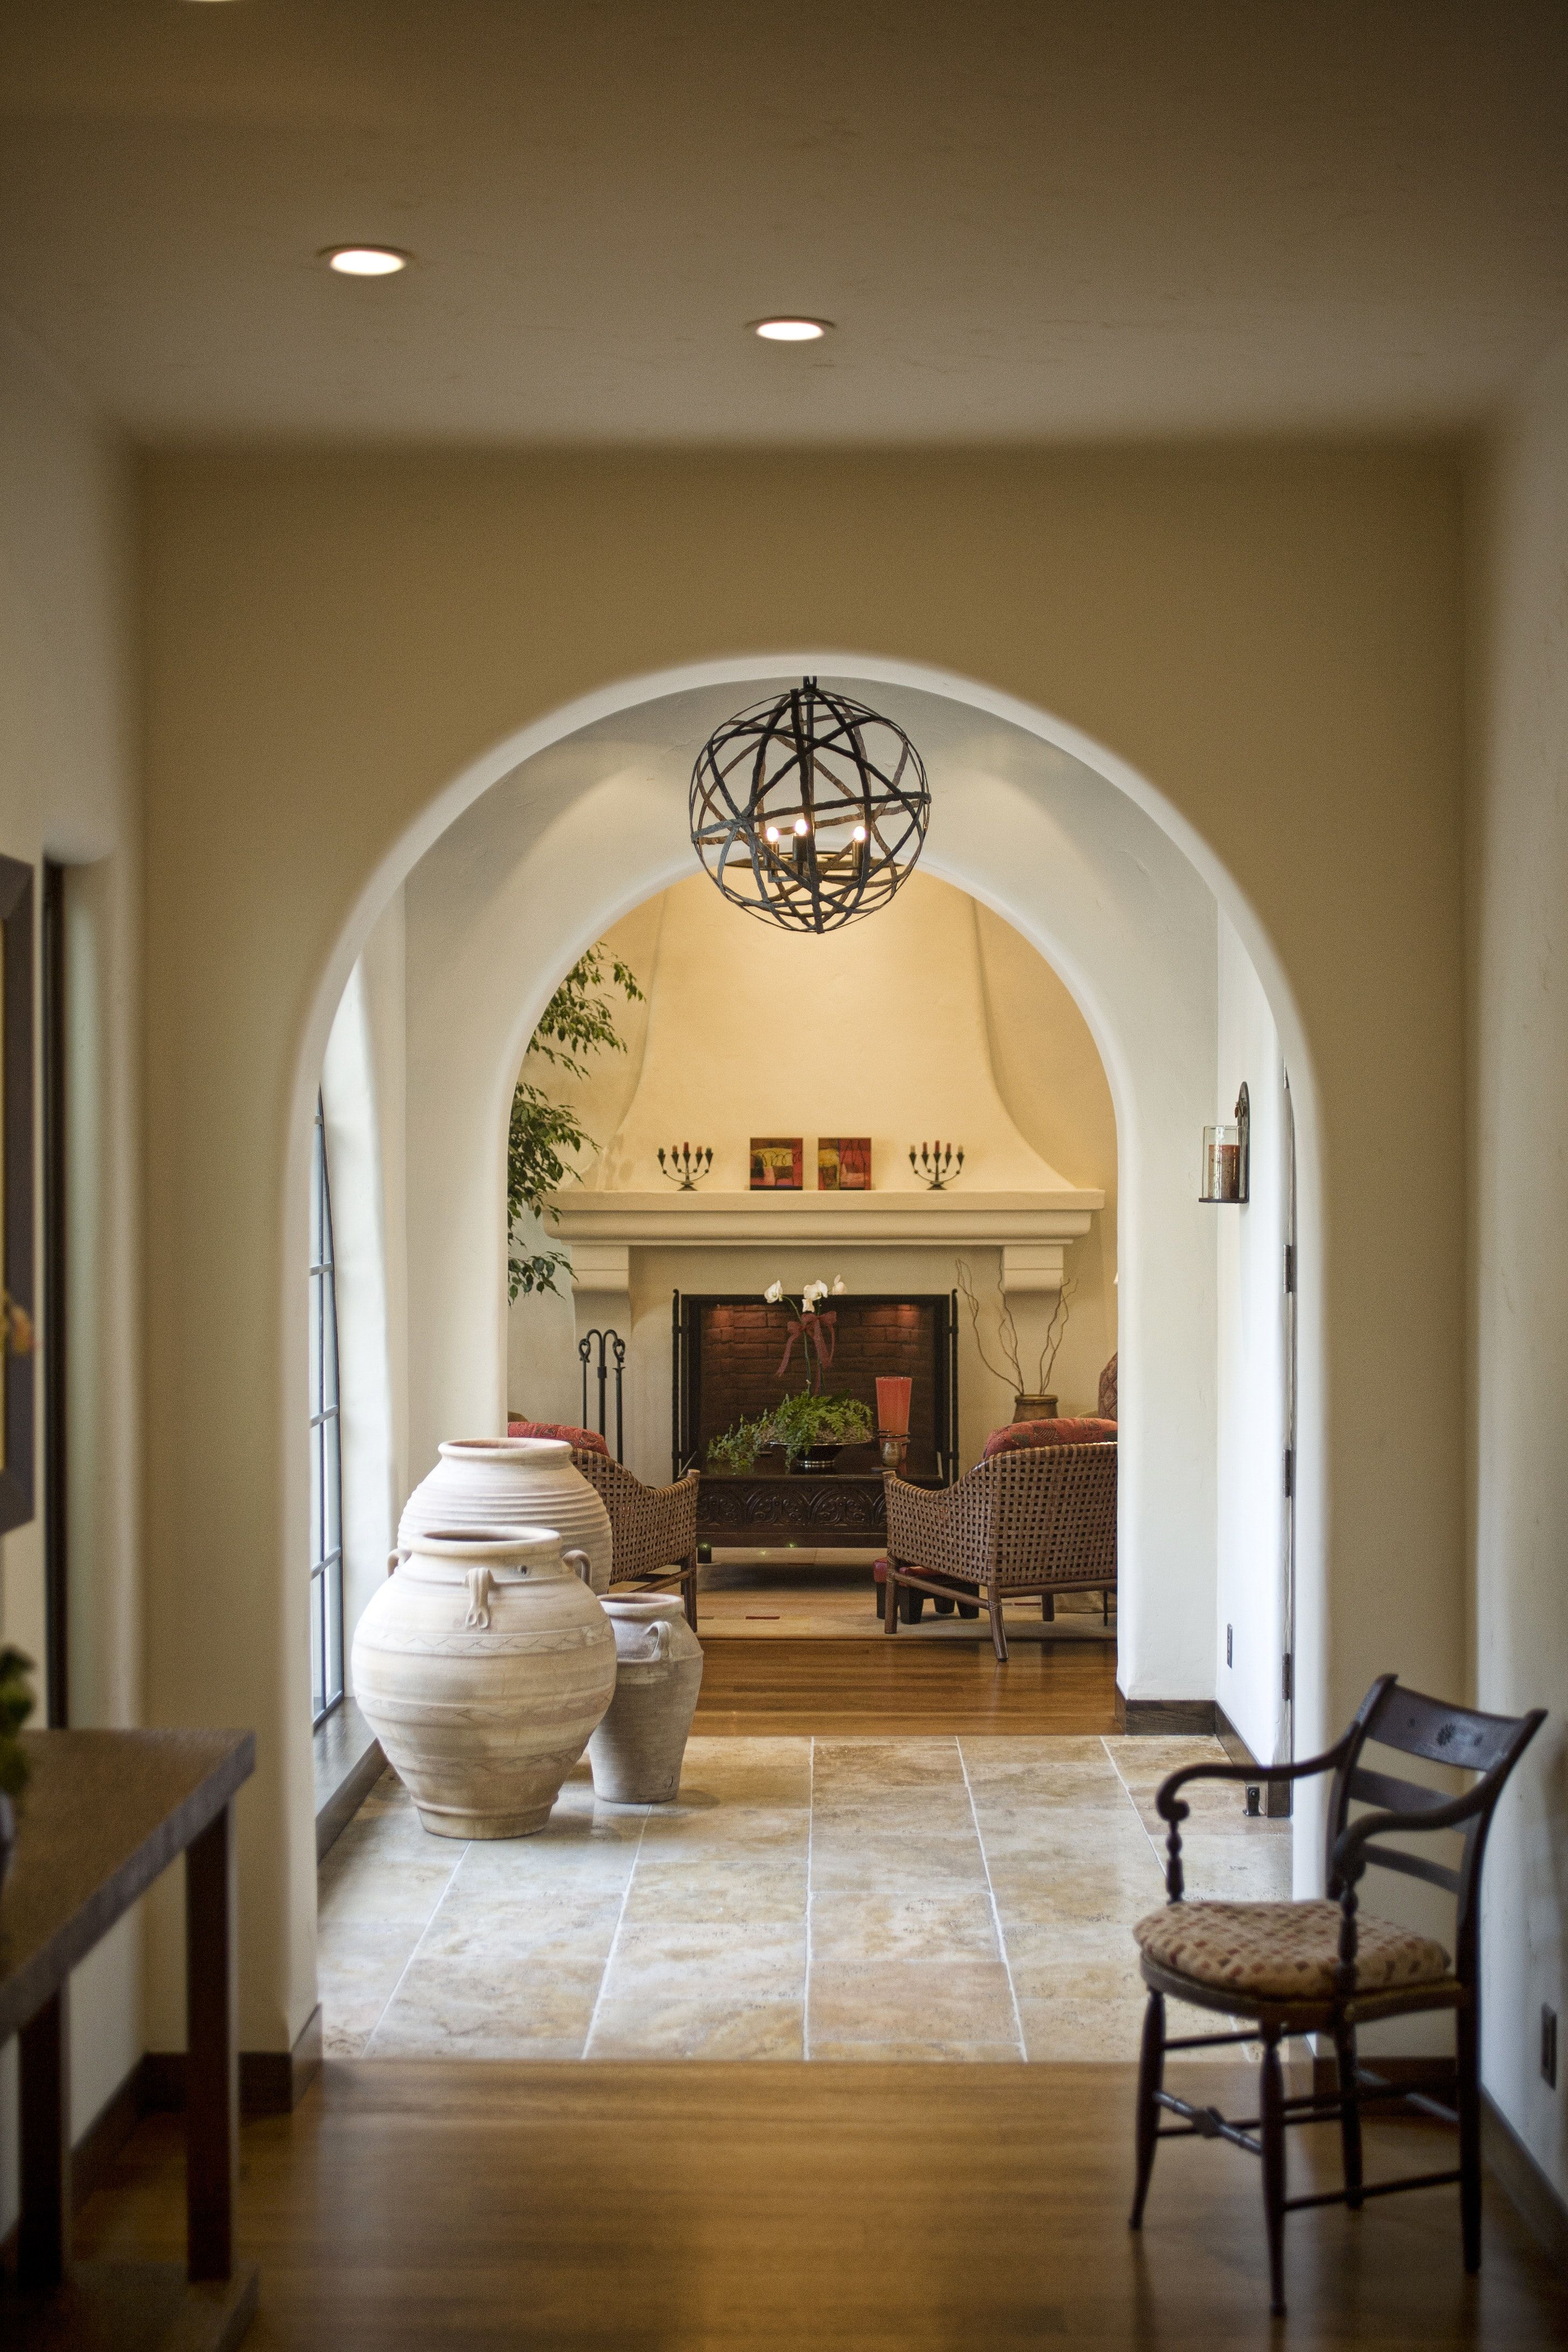 Spanish Colonial Home Hallway With Archways Inlaid Tile Floor And Fireplace By Fergus Garber Young Architects